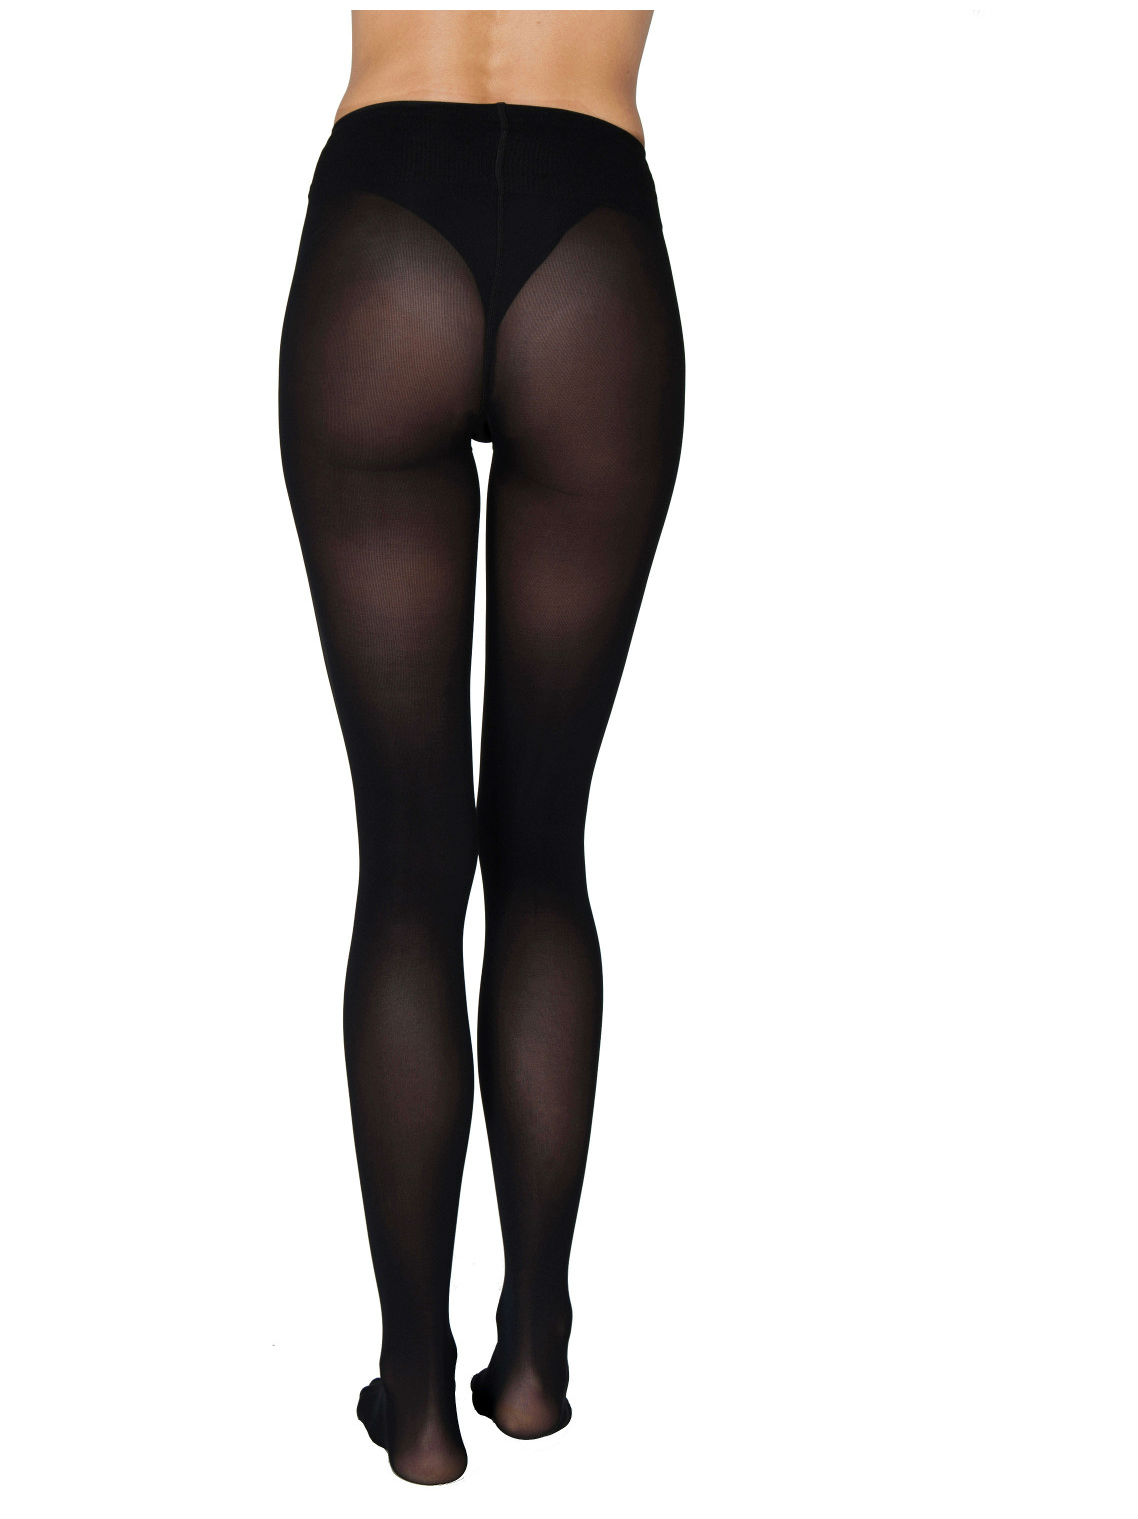 60 - Denier Pantyhose; Stockings. Fully Fashioned Seamed Stockings; RHT Stockings; Best Sellers - Stockings; 60 - Denier Pantyhose. Sort by: Cecilia de Rafael UPPSALA Denier Shiny Opaque Pantyhose Trasparenze Fellini 60 Denier Patterned Fashion Pantyhose. Compare. $ Buy Now.